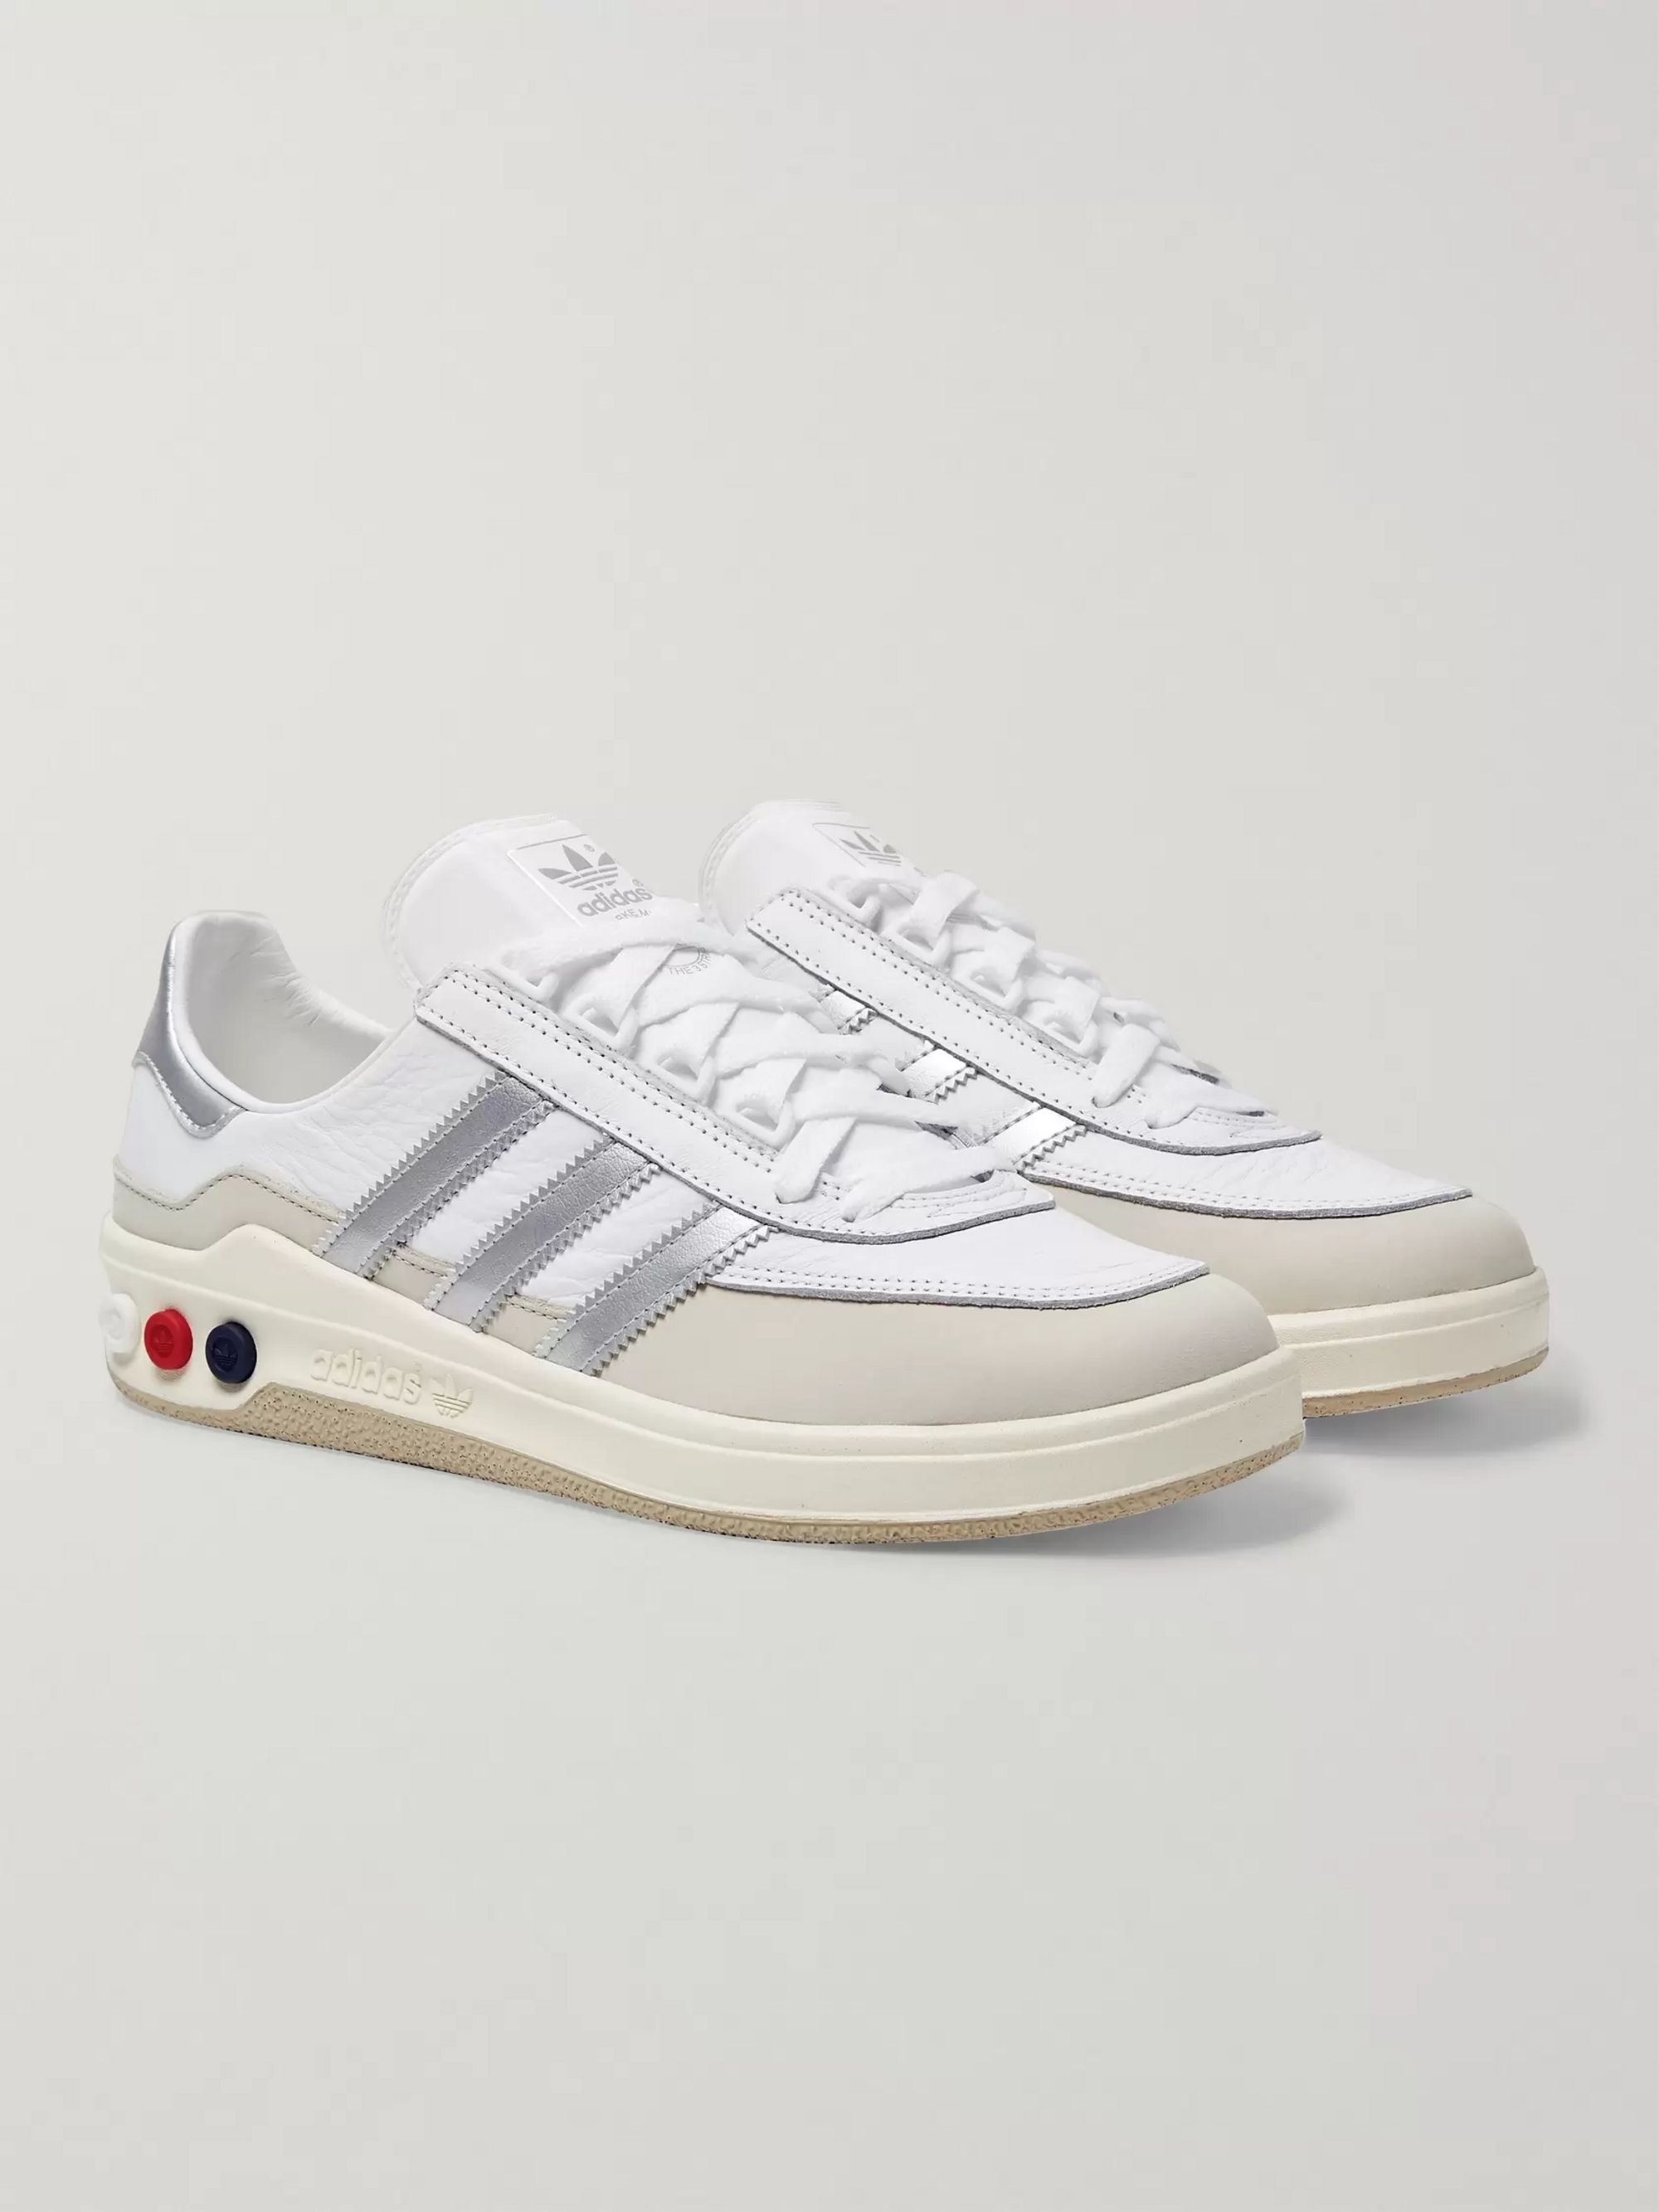 adidas Consortium GLXY SPZL Leather Sneakers